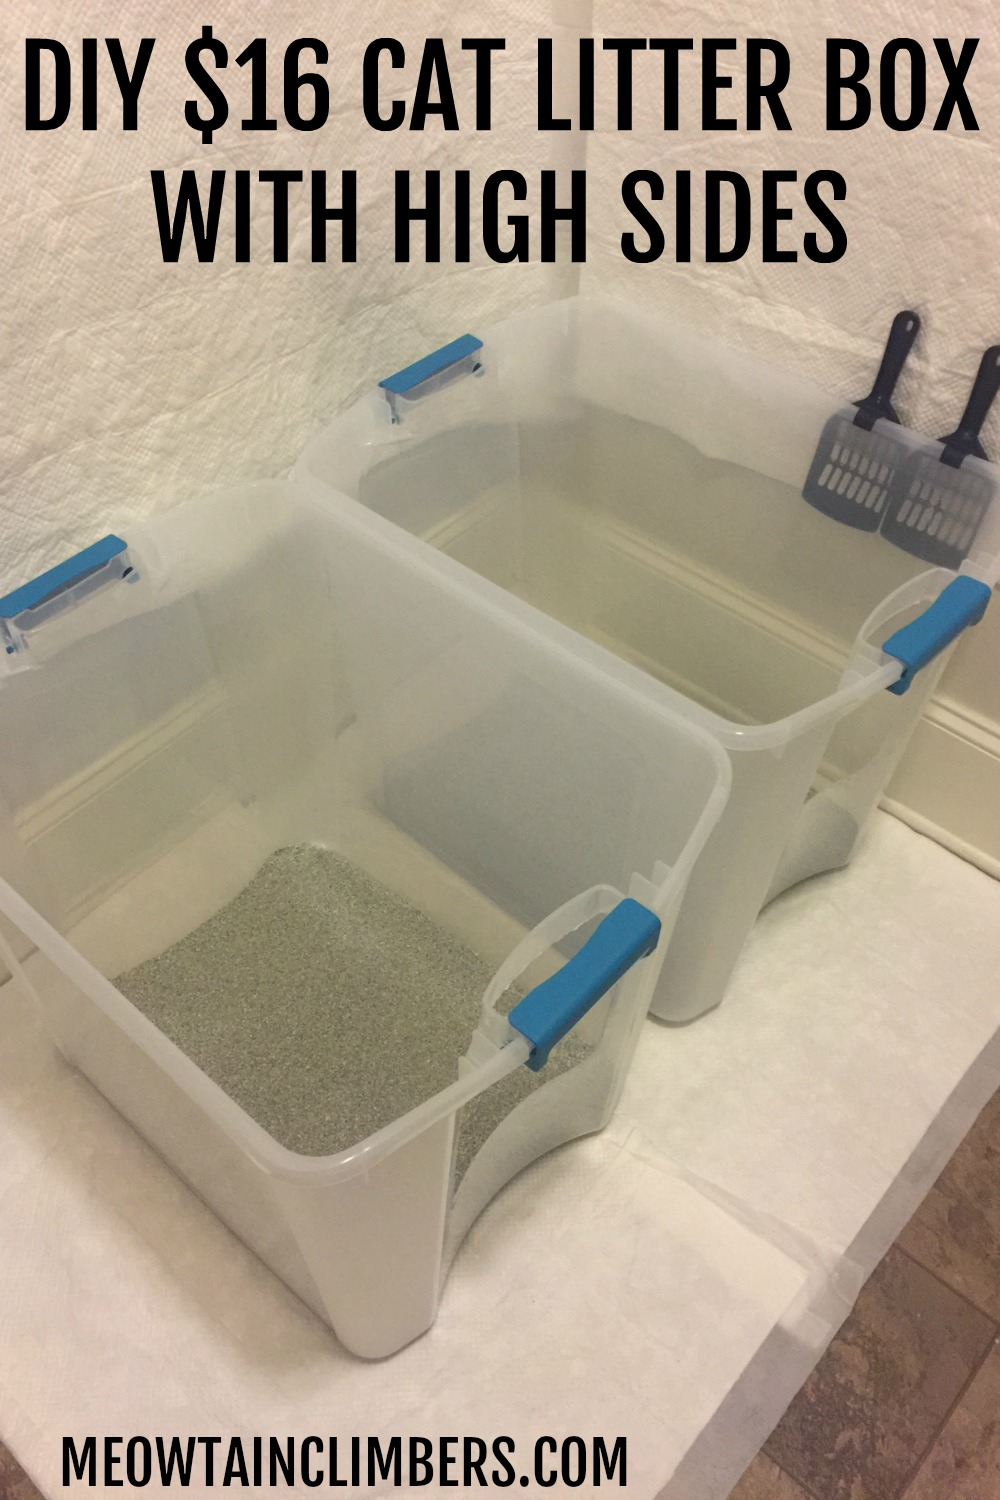 Two rubbermaid containers used as cat litter boxes in a laundry room